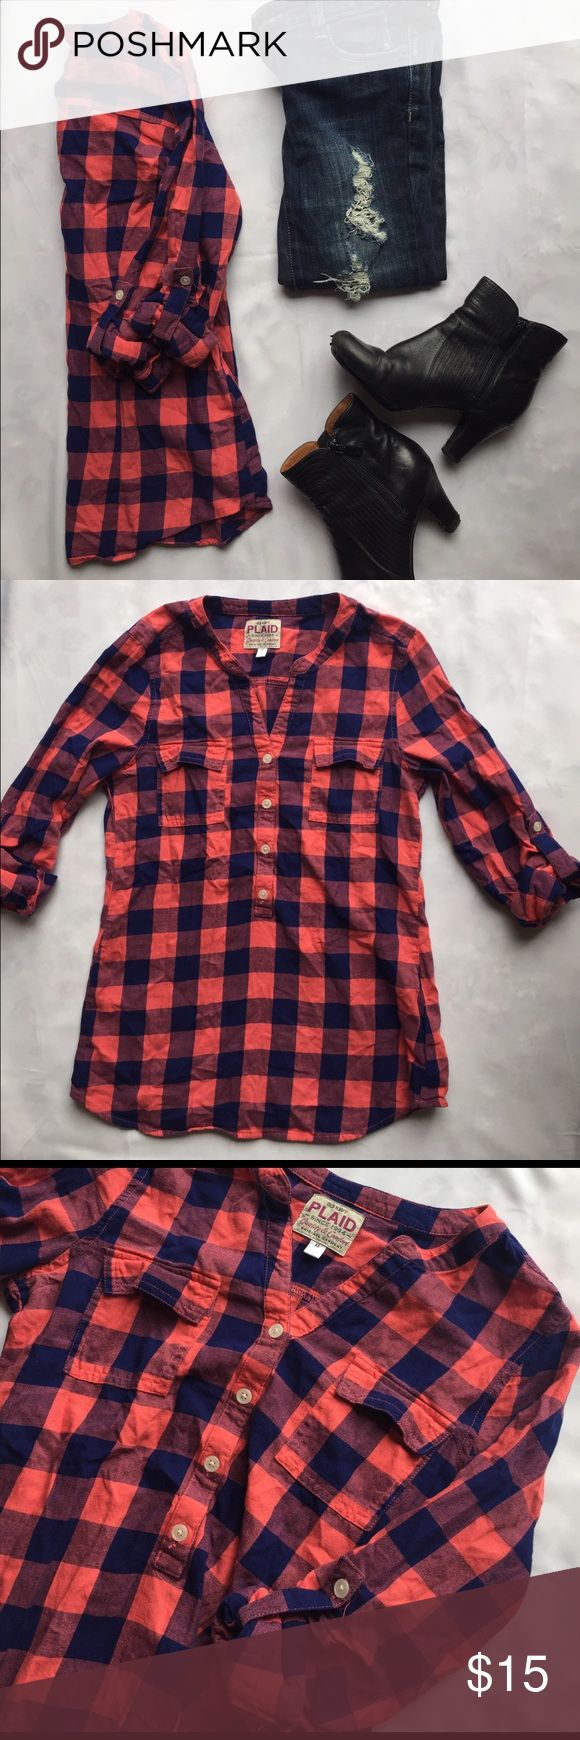 Old Navy pink and blue checkered shirt Diverse checkered half button down shirt that would be perfect with dark skinny jeans and boots for the fall! The material is 100% cotton. No flaws! Old Navy Tops Tees - Long Sleeve